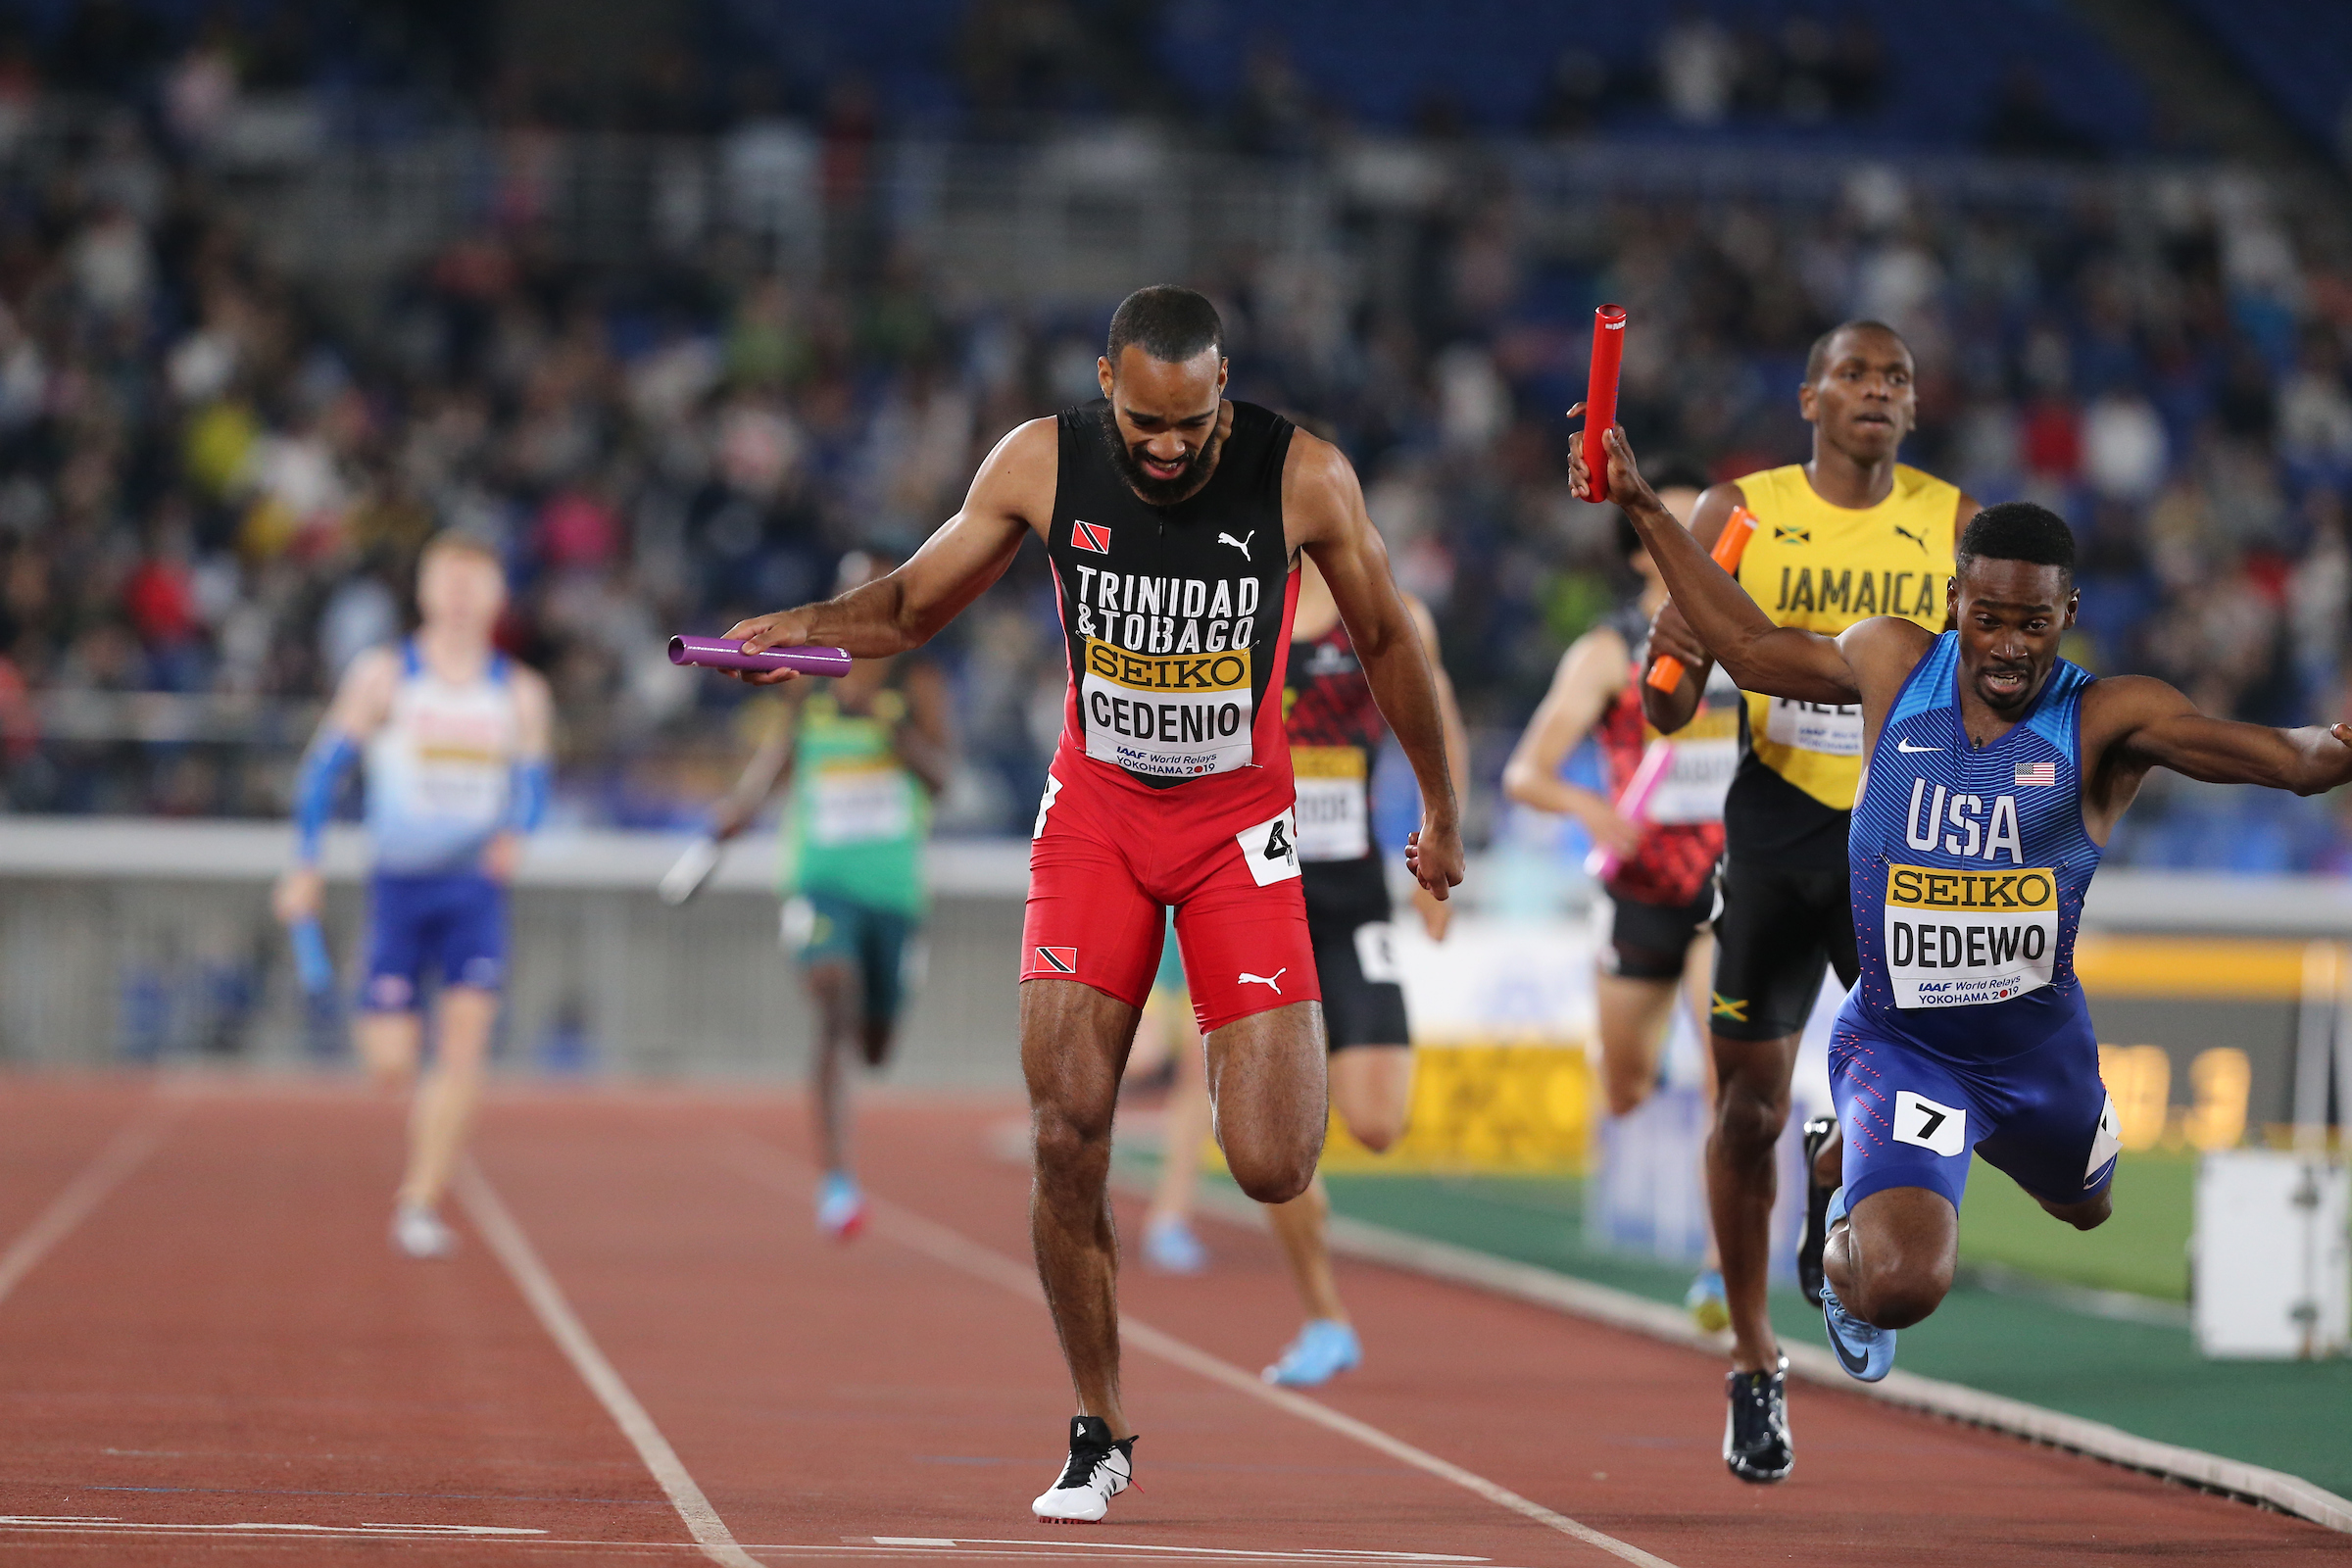 YOKOHAMA, JAPAN - MAY 12: during Day 2 of the 2019 IAAF World Relay Championships at the Nissan Stadium on Sunday May 12, 2019 in Yokohama, Japan. (Photo by Roger Sedres for the IAAF)